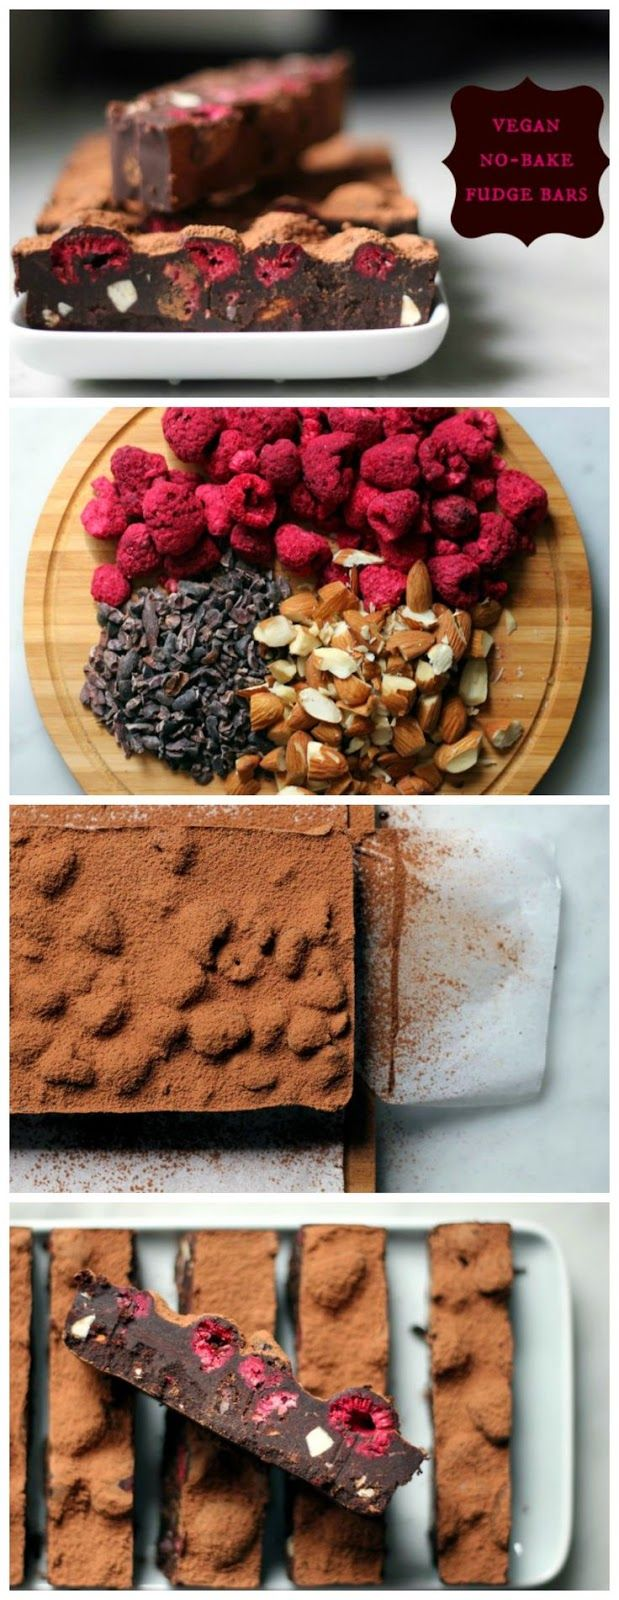 Vegan No-Bake Fudge Bars with raspberries cacao nibs and almonds - would be good for valentine's day